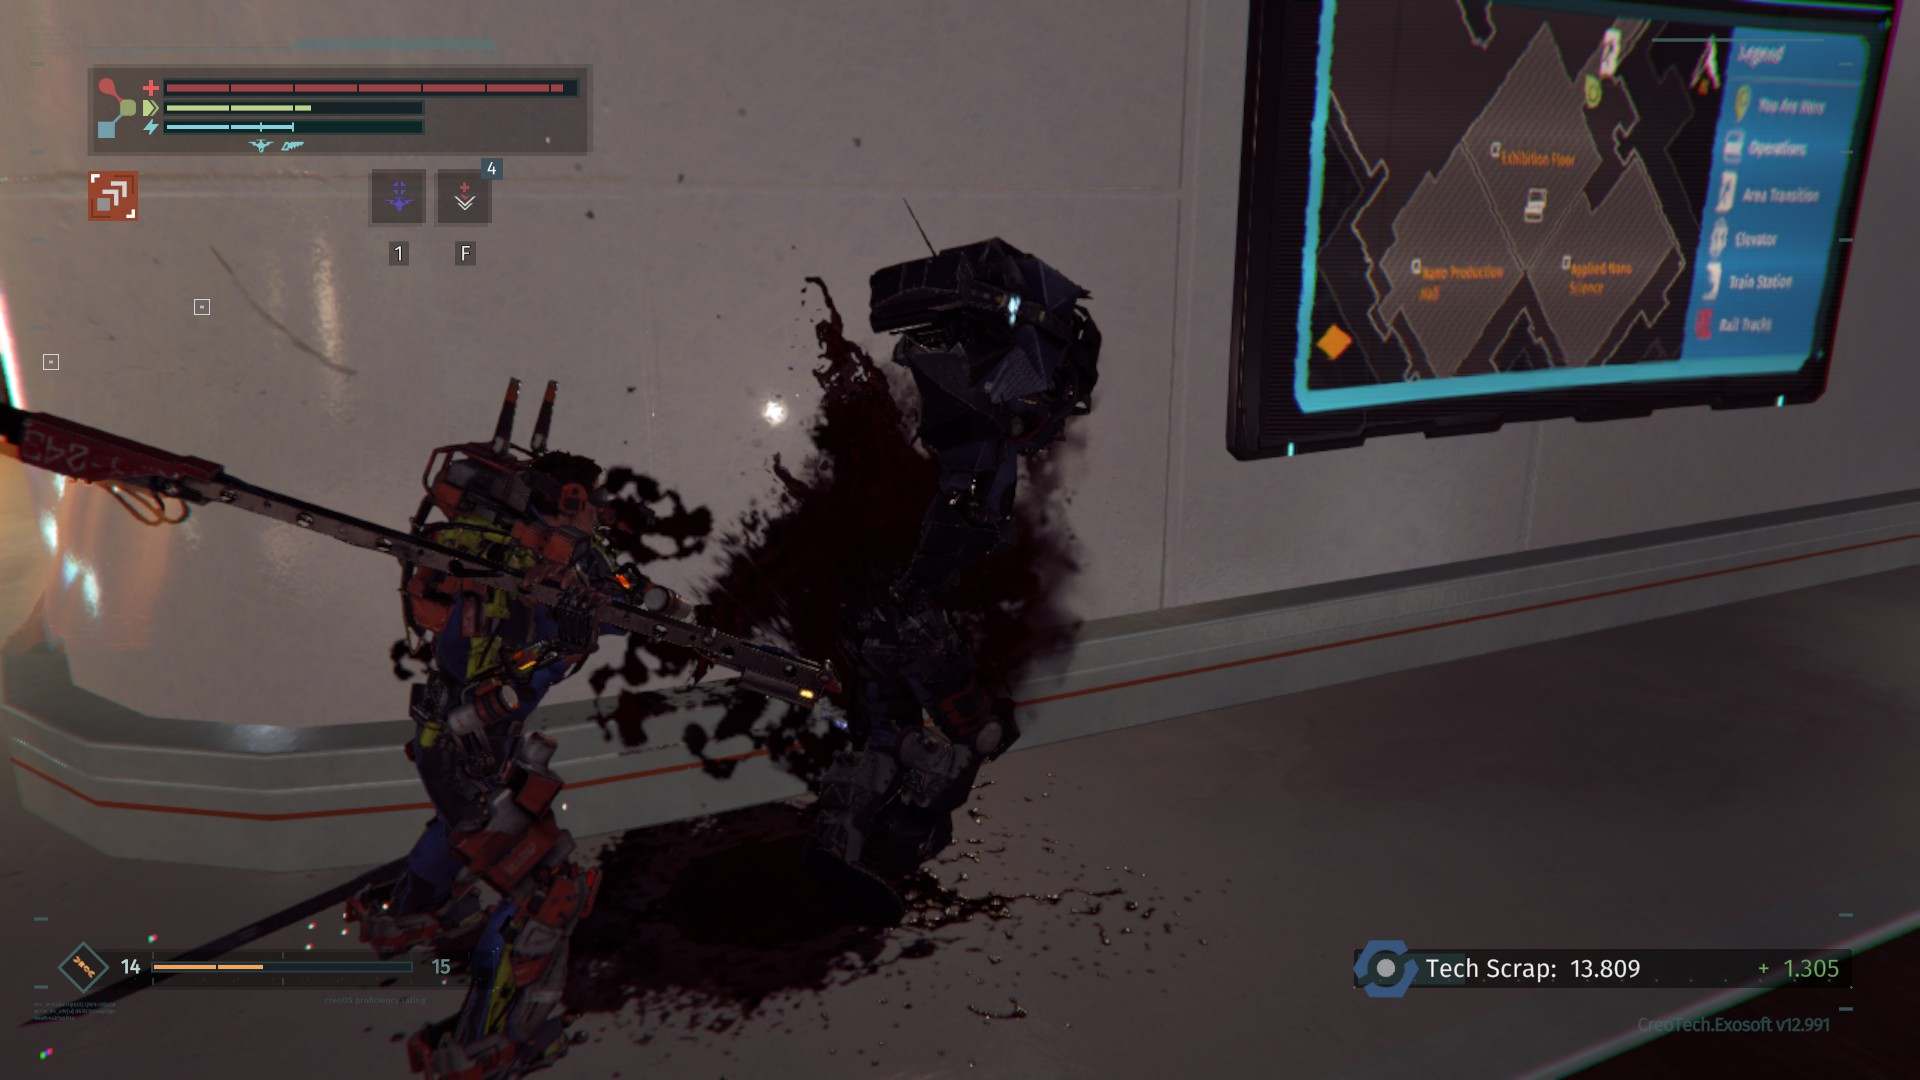 Much like farming for components, collecting Schematics requires you to cut off enemy limbs in The Surge.